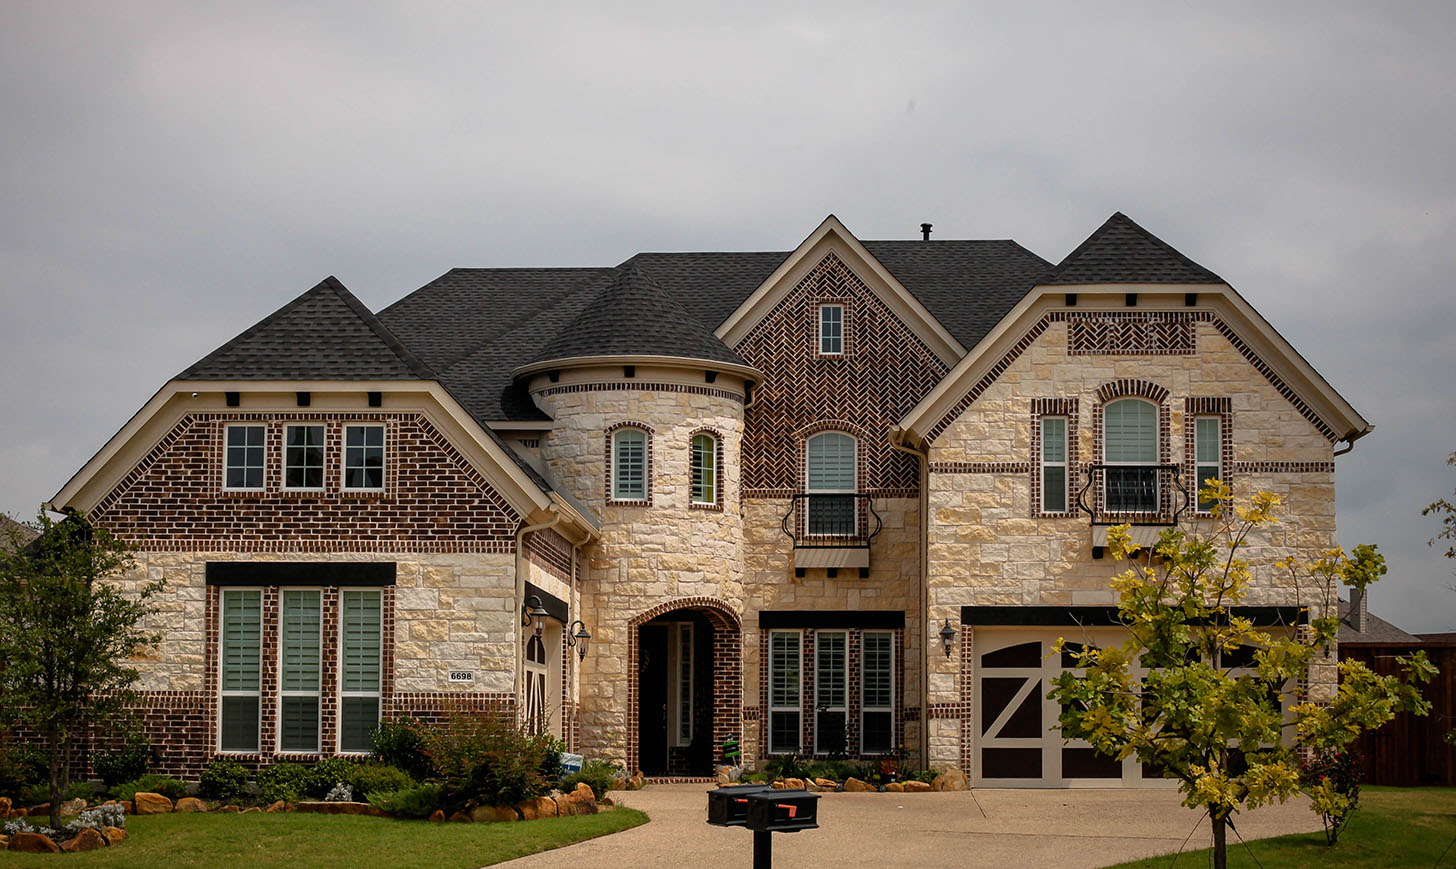 frame-restoration-frisco-tx-roofing-company-frisco-tx-roof-replacemet